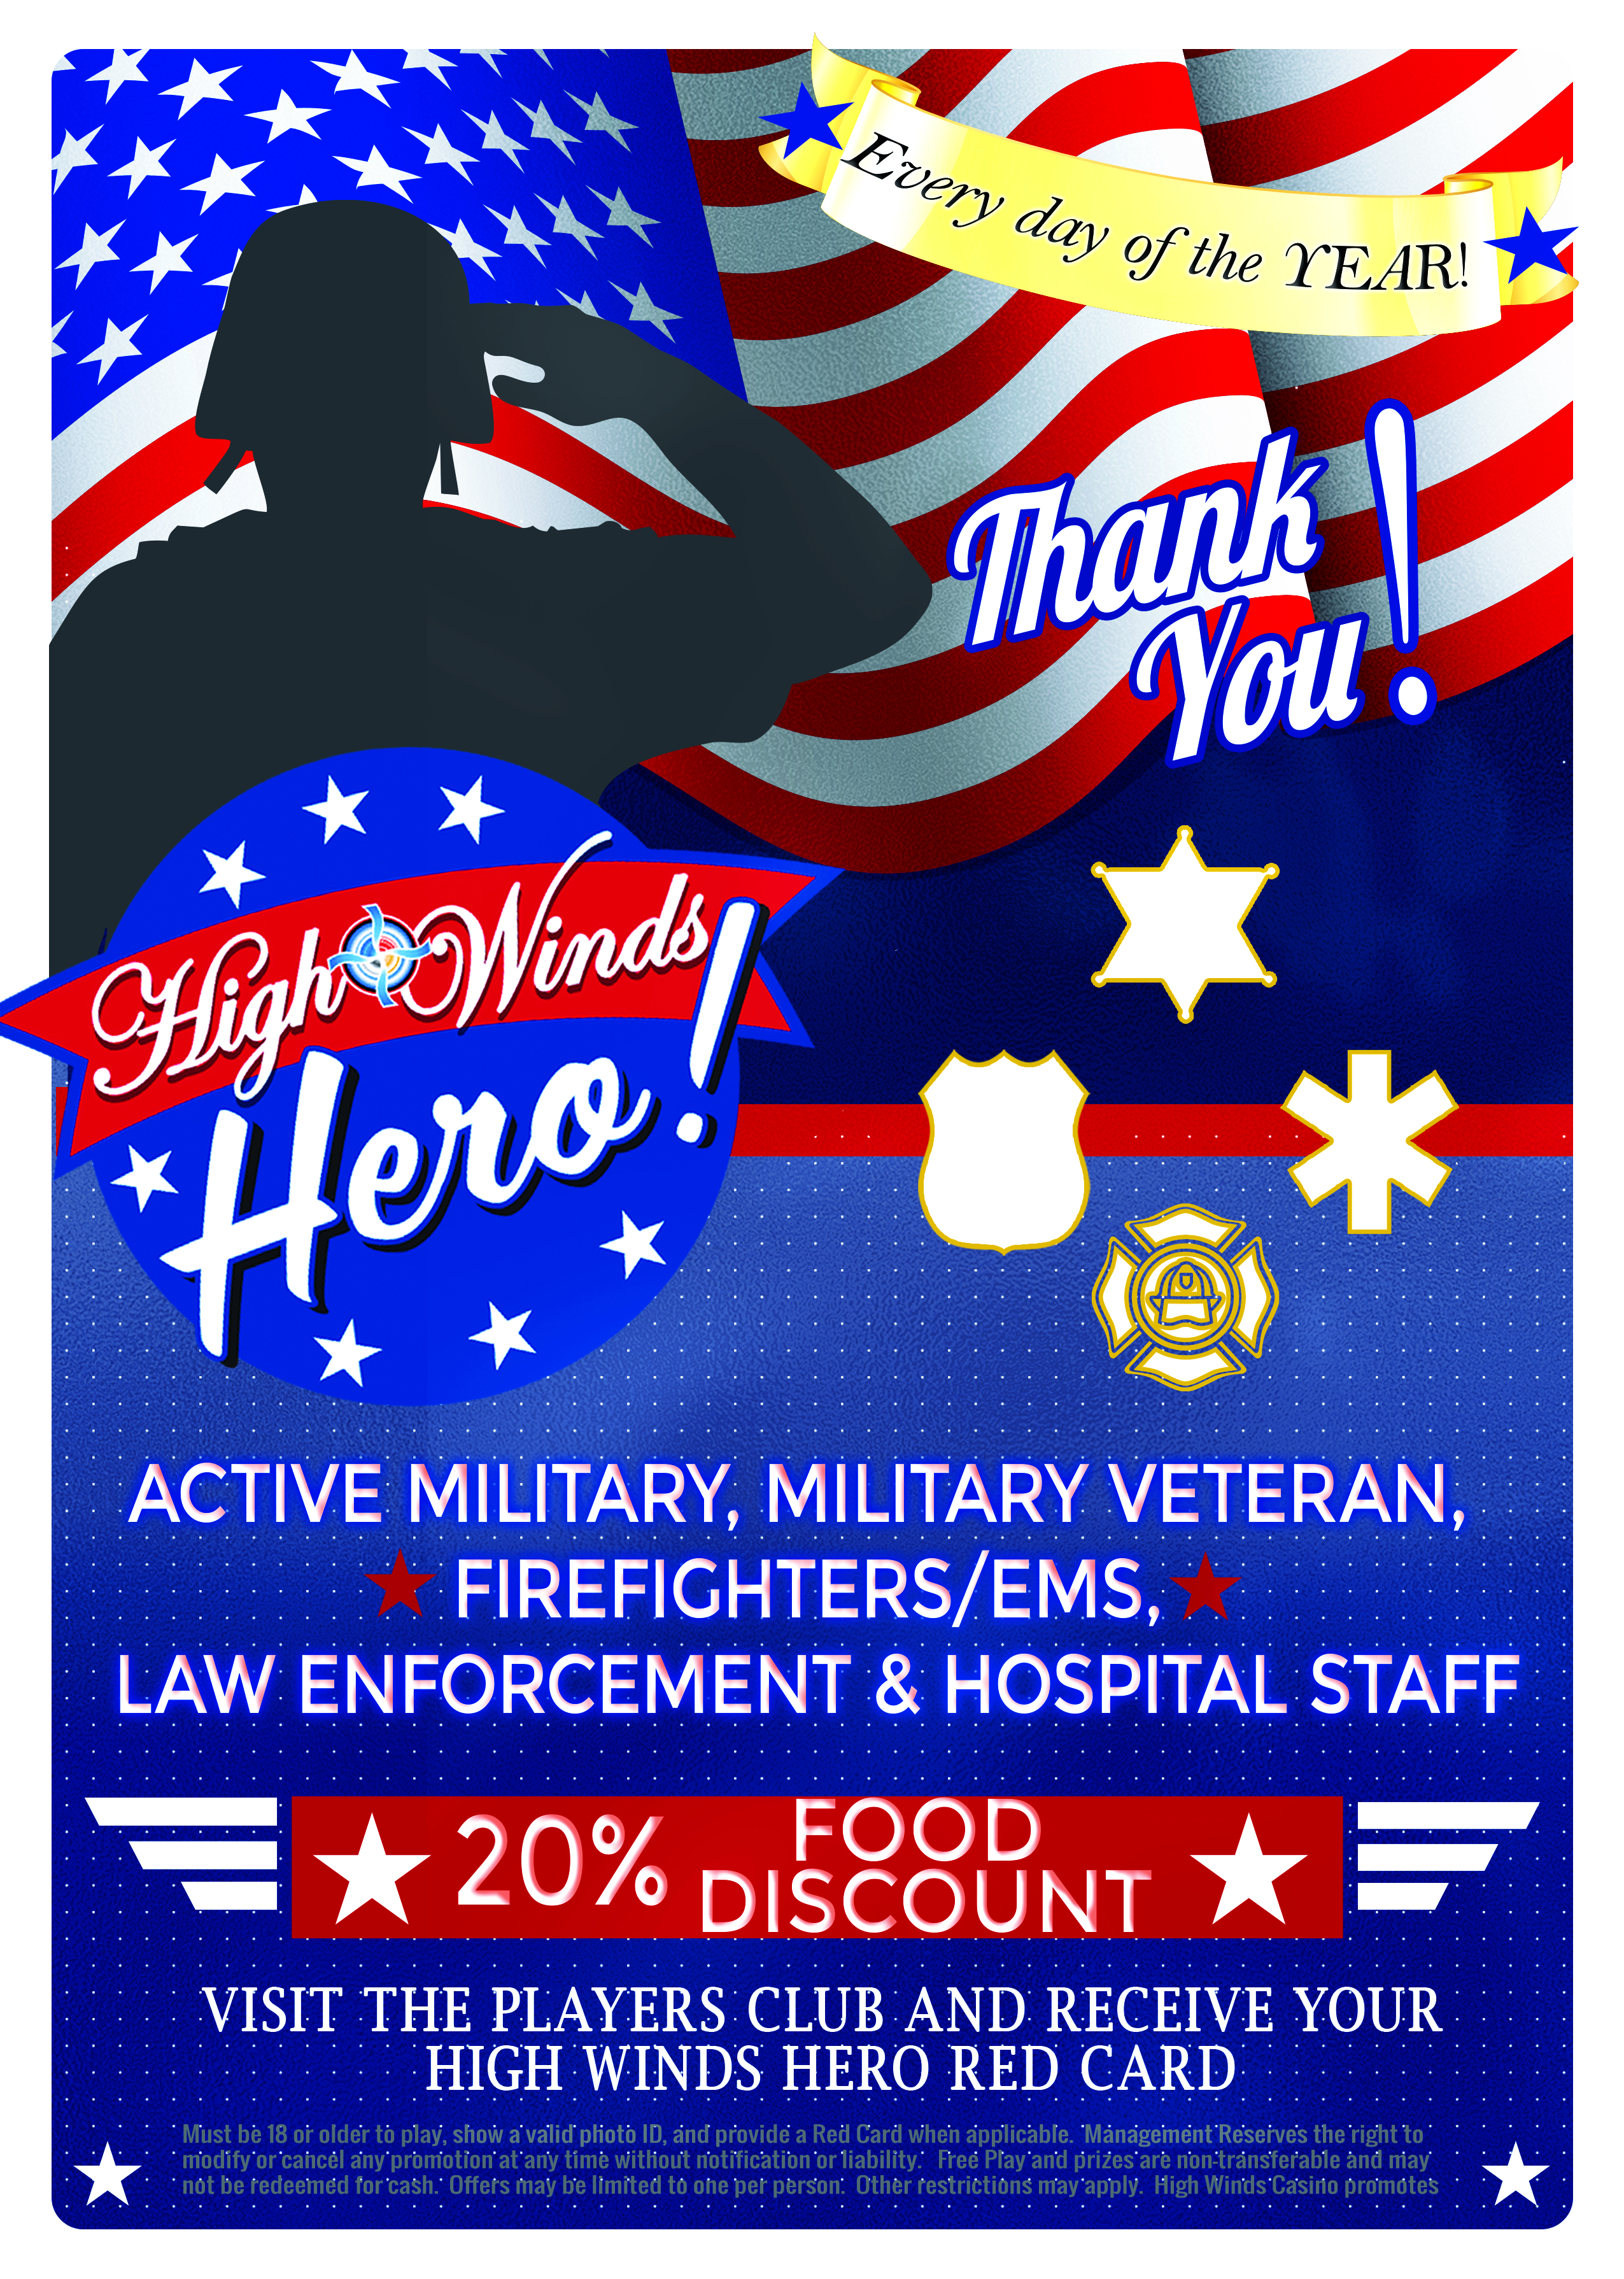 MobiriseHigh Winds Heroes is our way of saying thank you to those who serve! All Active Military, Veterans, Law Enforcement, EMS, Firefighters, and Hospital Staff can visit our player's club to receive their own High Wind Hero card. The High Winds Hero card will allow the cardholder to receive 20% off their meals in the High Winds Steakhouse every day of the year!